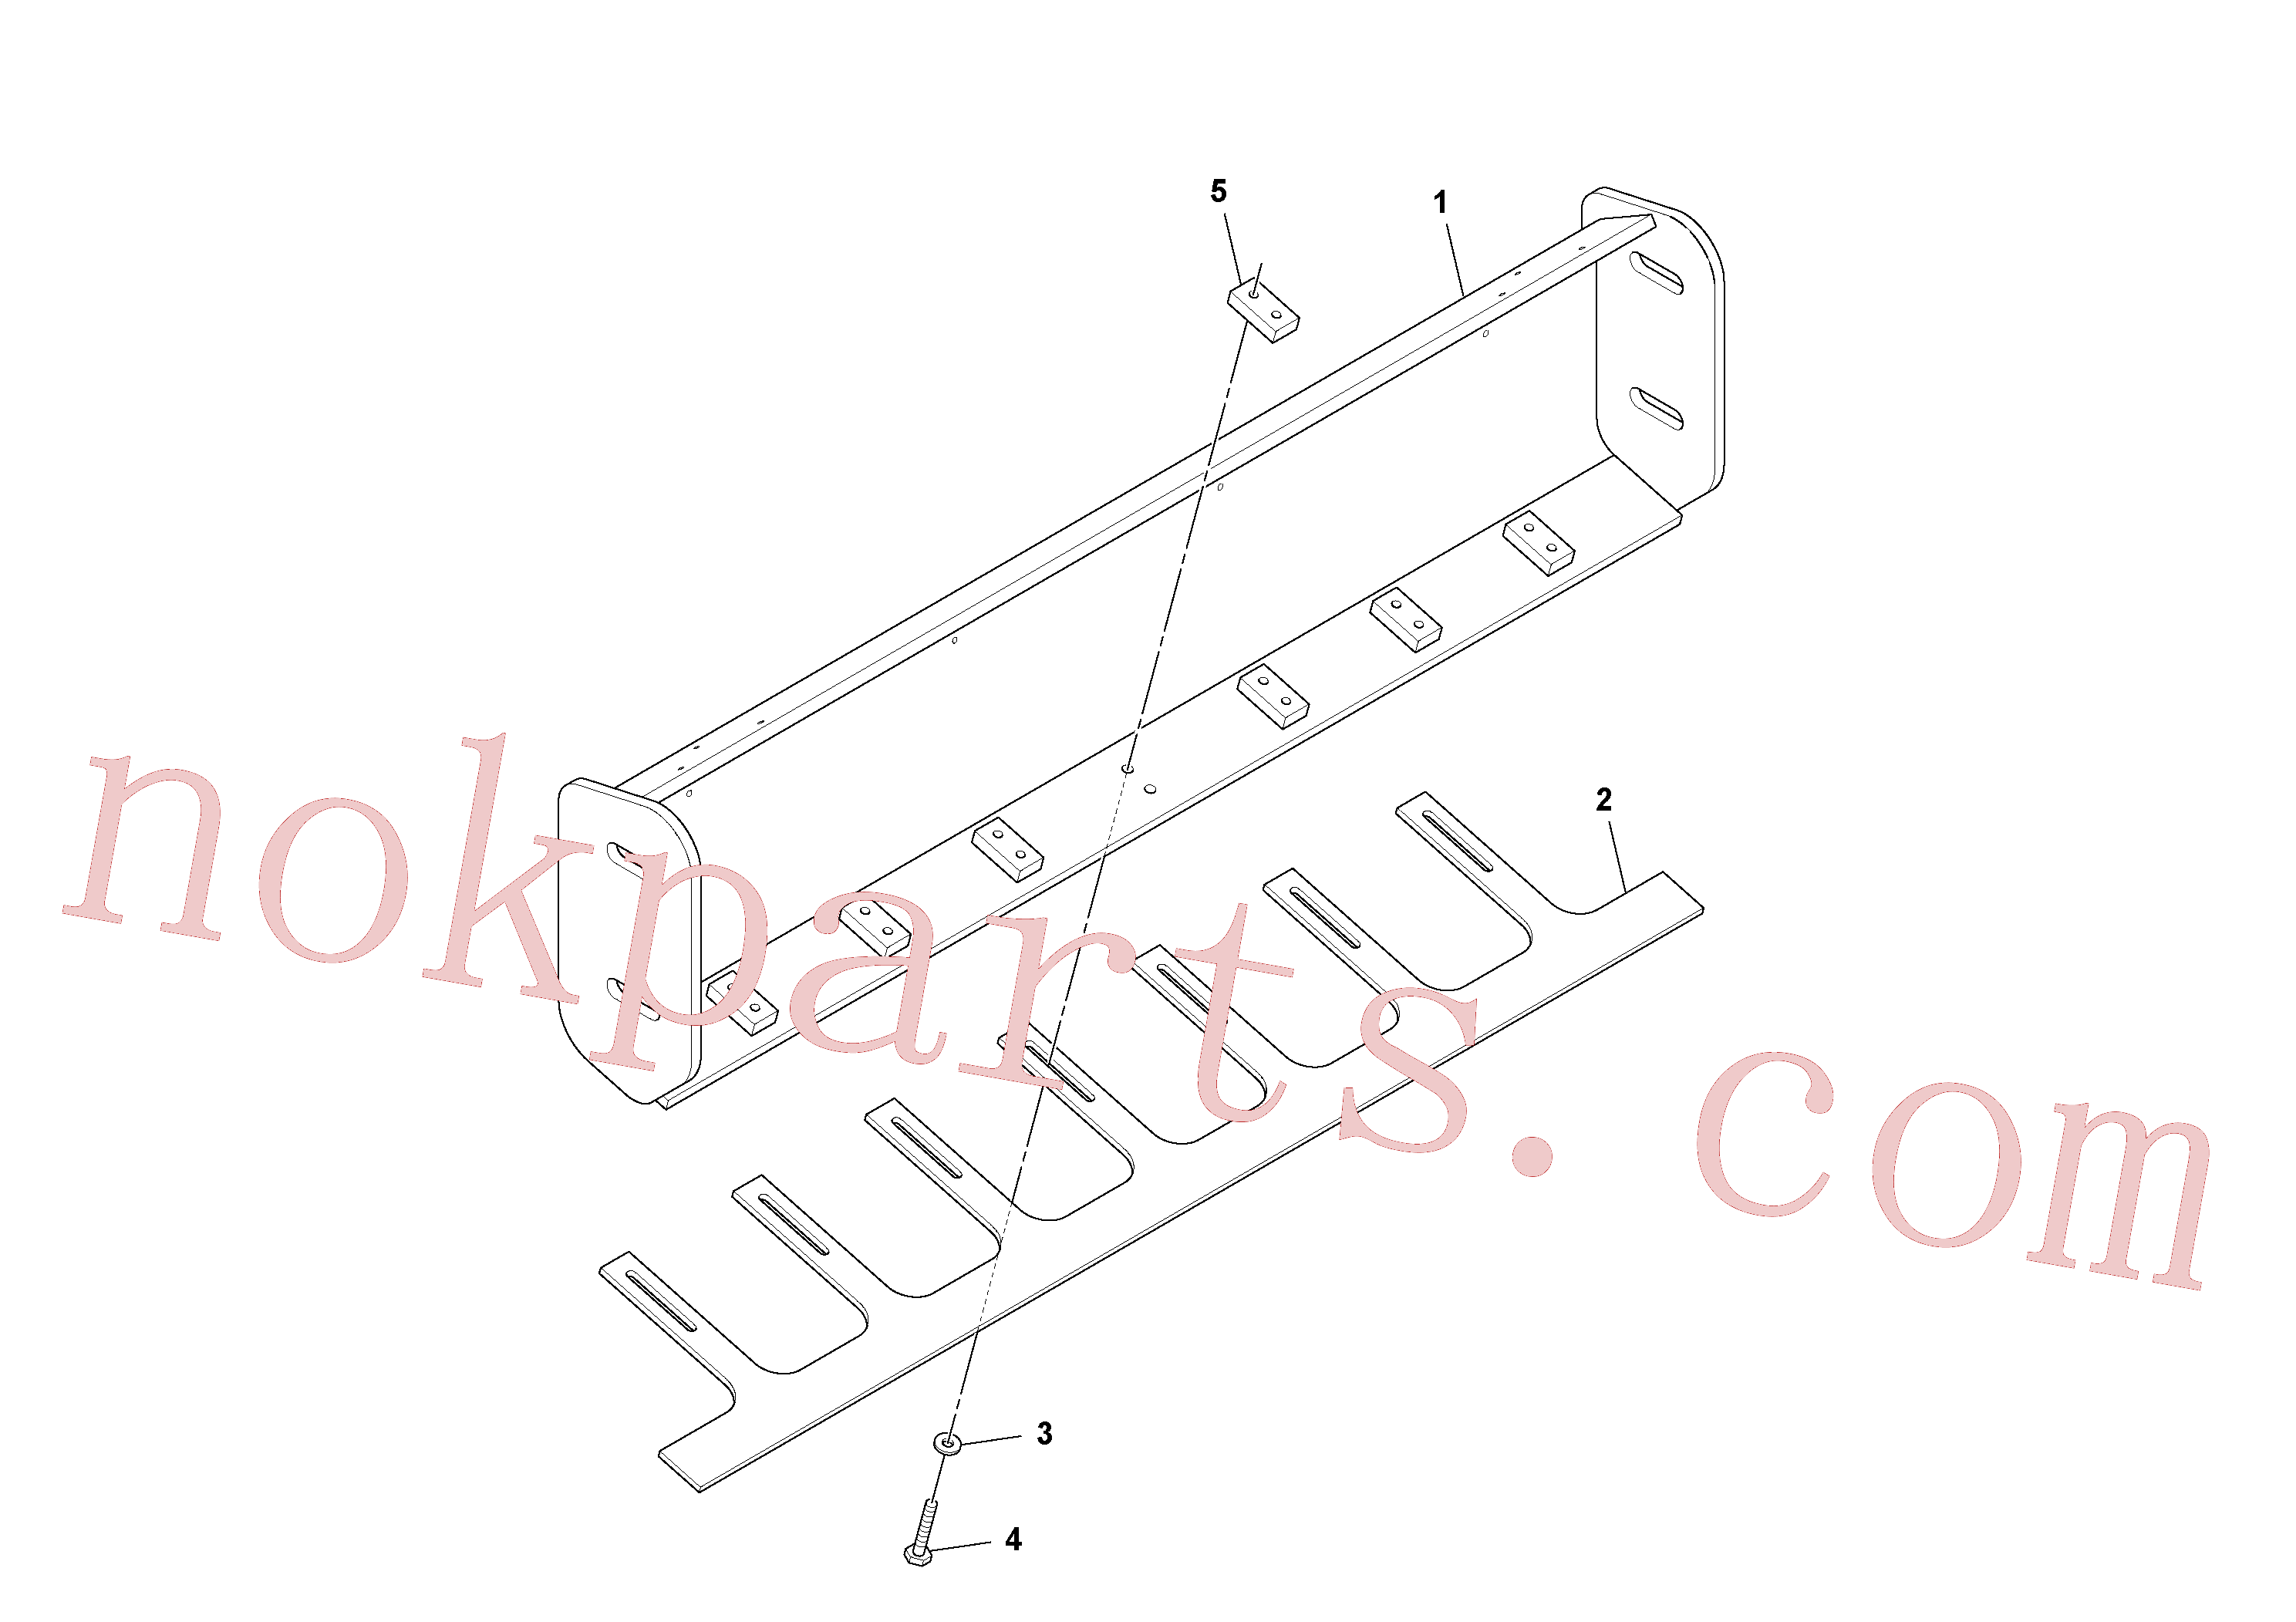 RM96721873 for Volvo Eu Weighted Scraper Installation, Premium Scraper Installation(1051328 assembly)